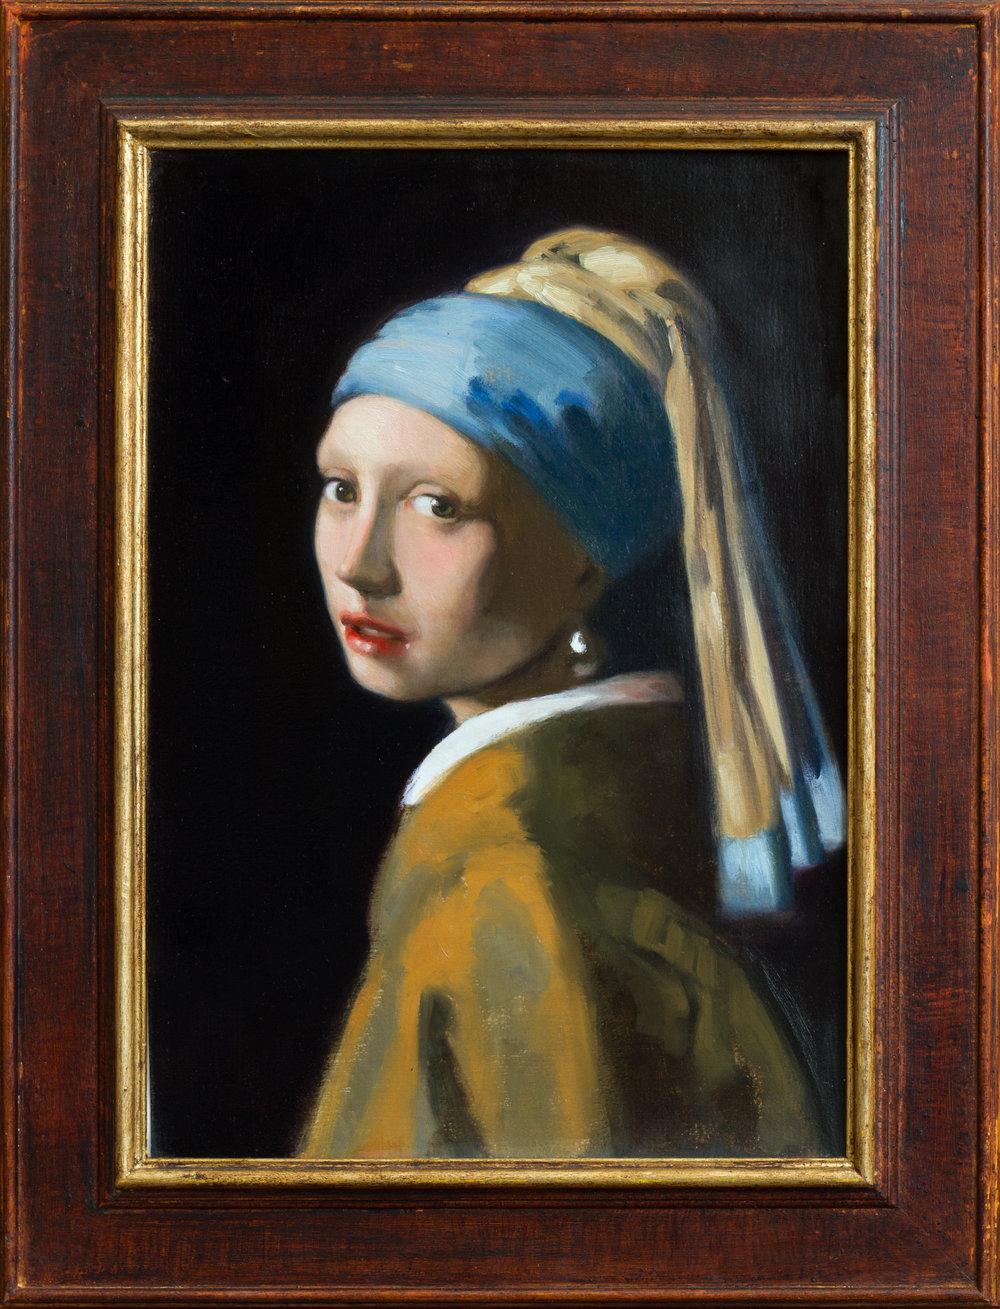 Copy after Vermeer's Girl with a Pearl Earring